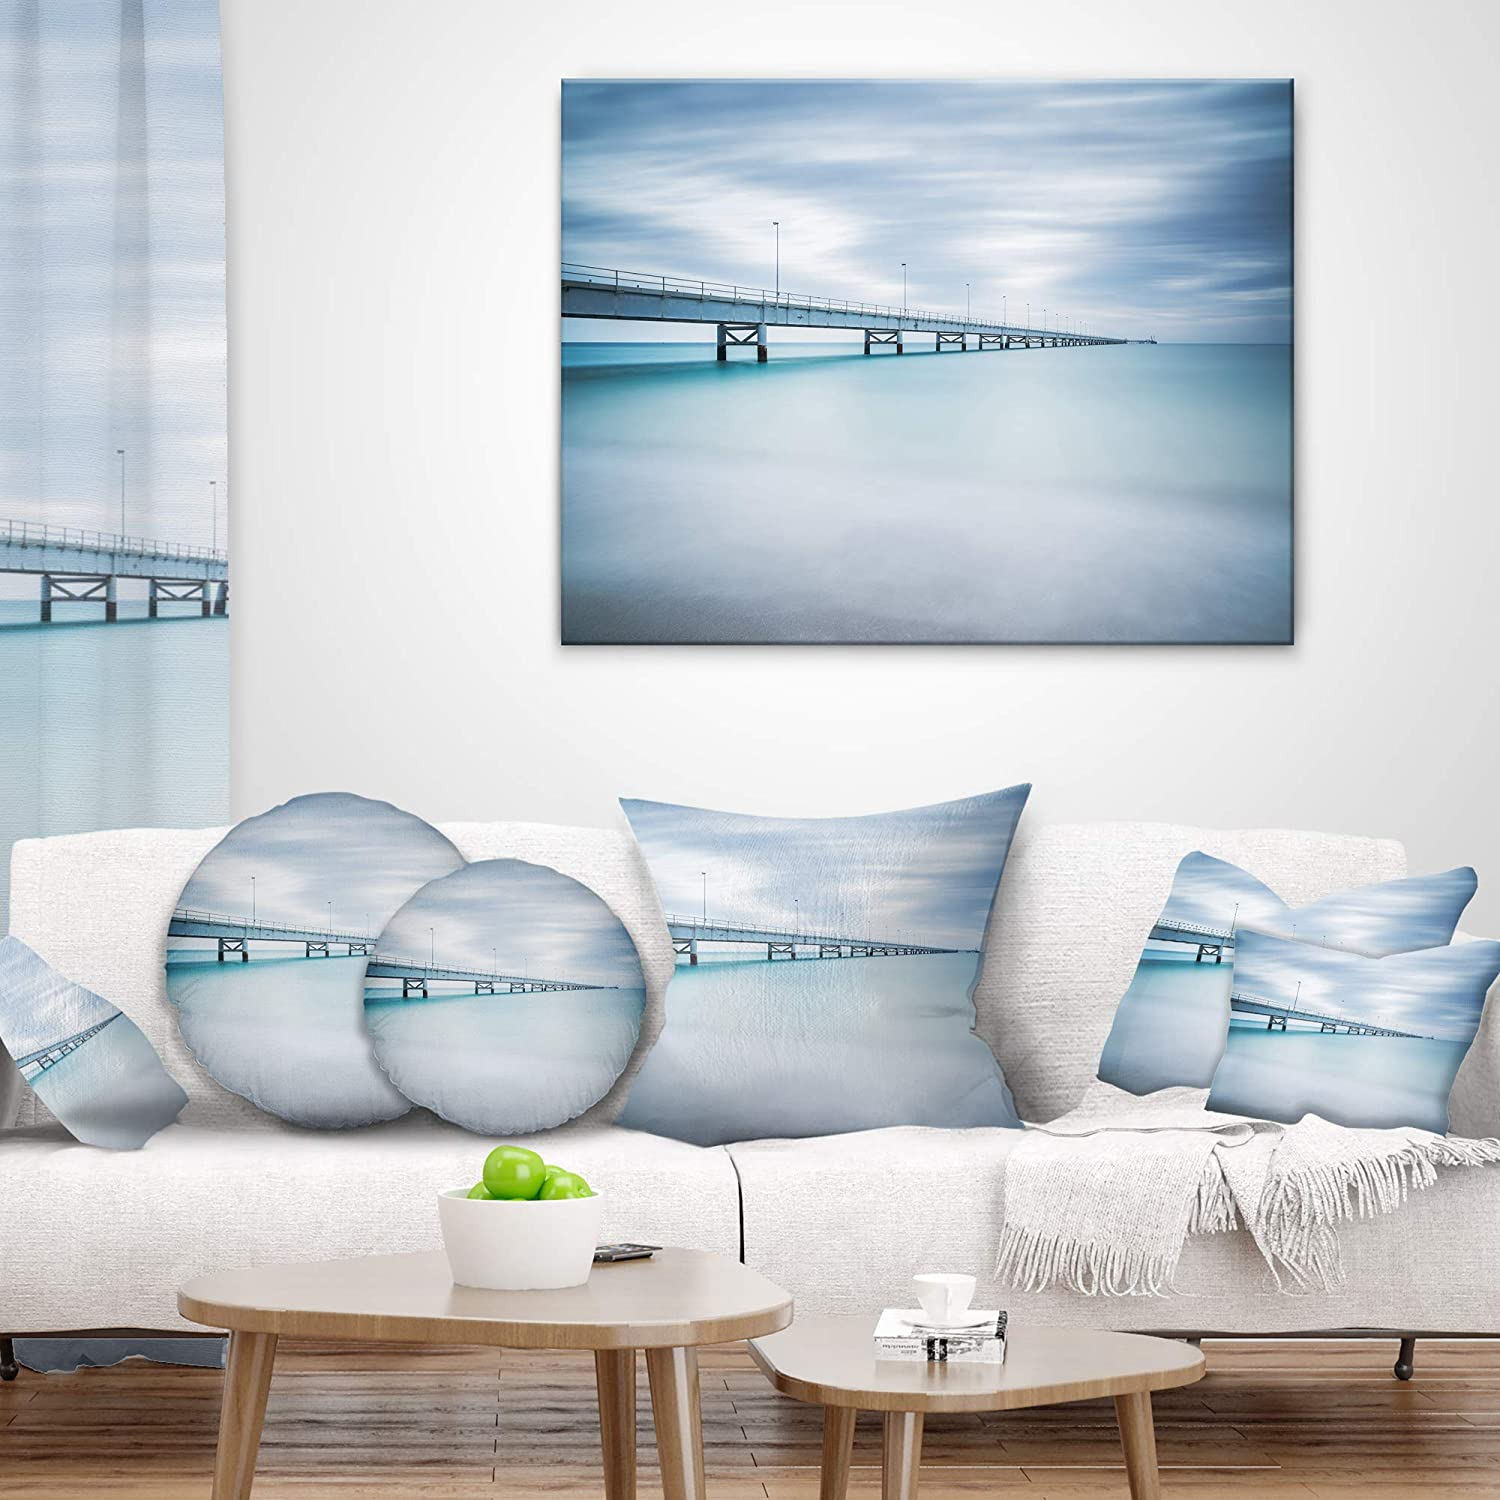 Sofa Throw Pillow 16 Insert Printed Designart CU8499-16-16-C Industrial Pier Side View Seascape Round Cushion Cover for Living Room